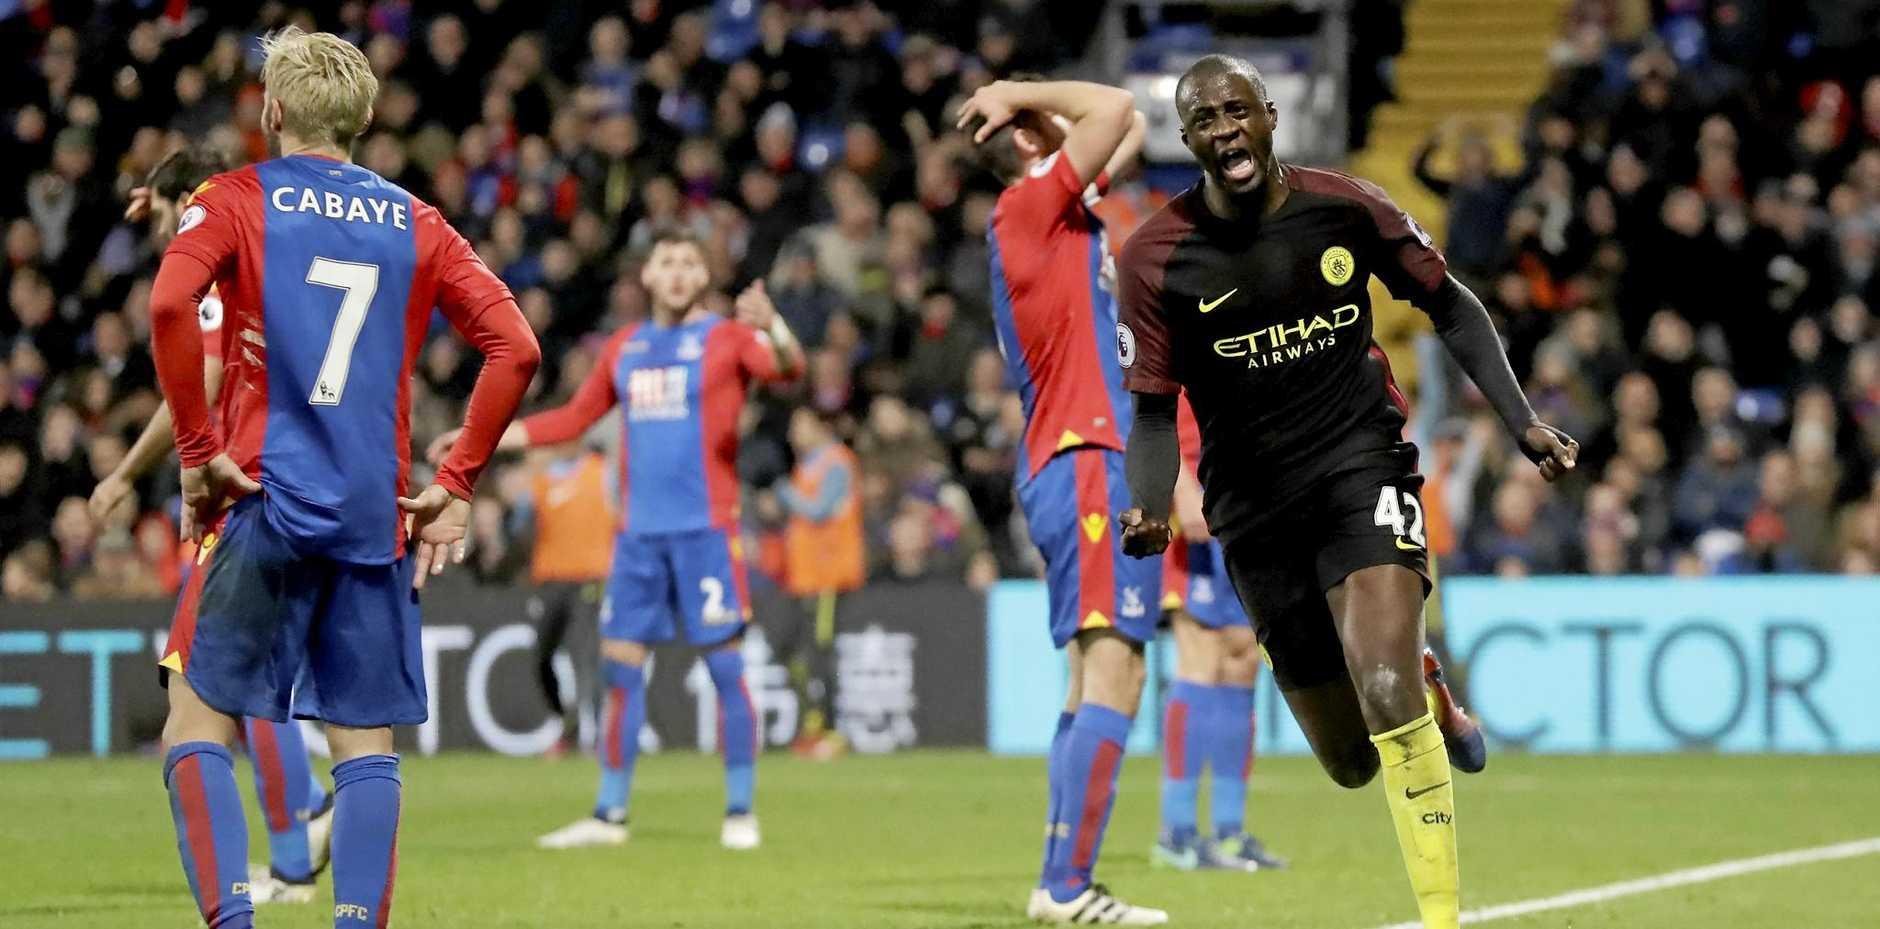 Manchester City's Yaya Toure celebrates scoring his side's second goal against Crystal Palace.